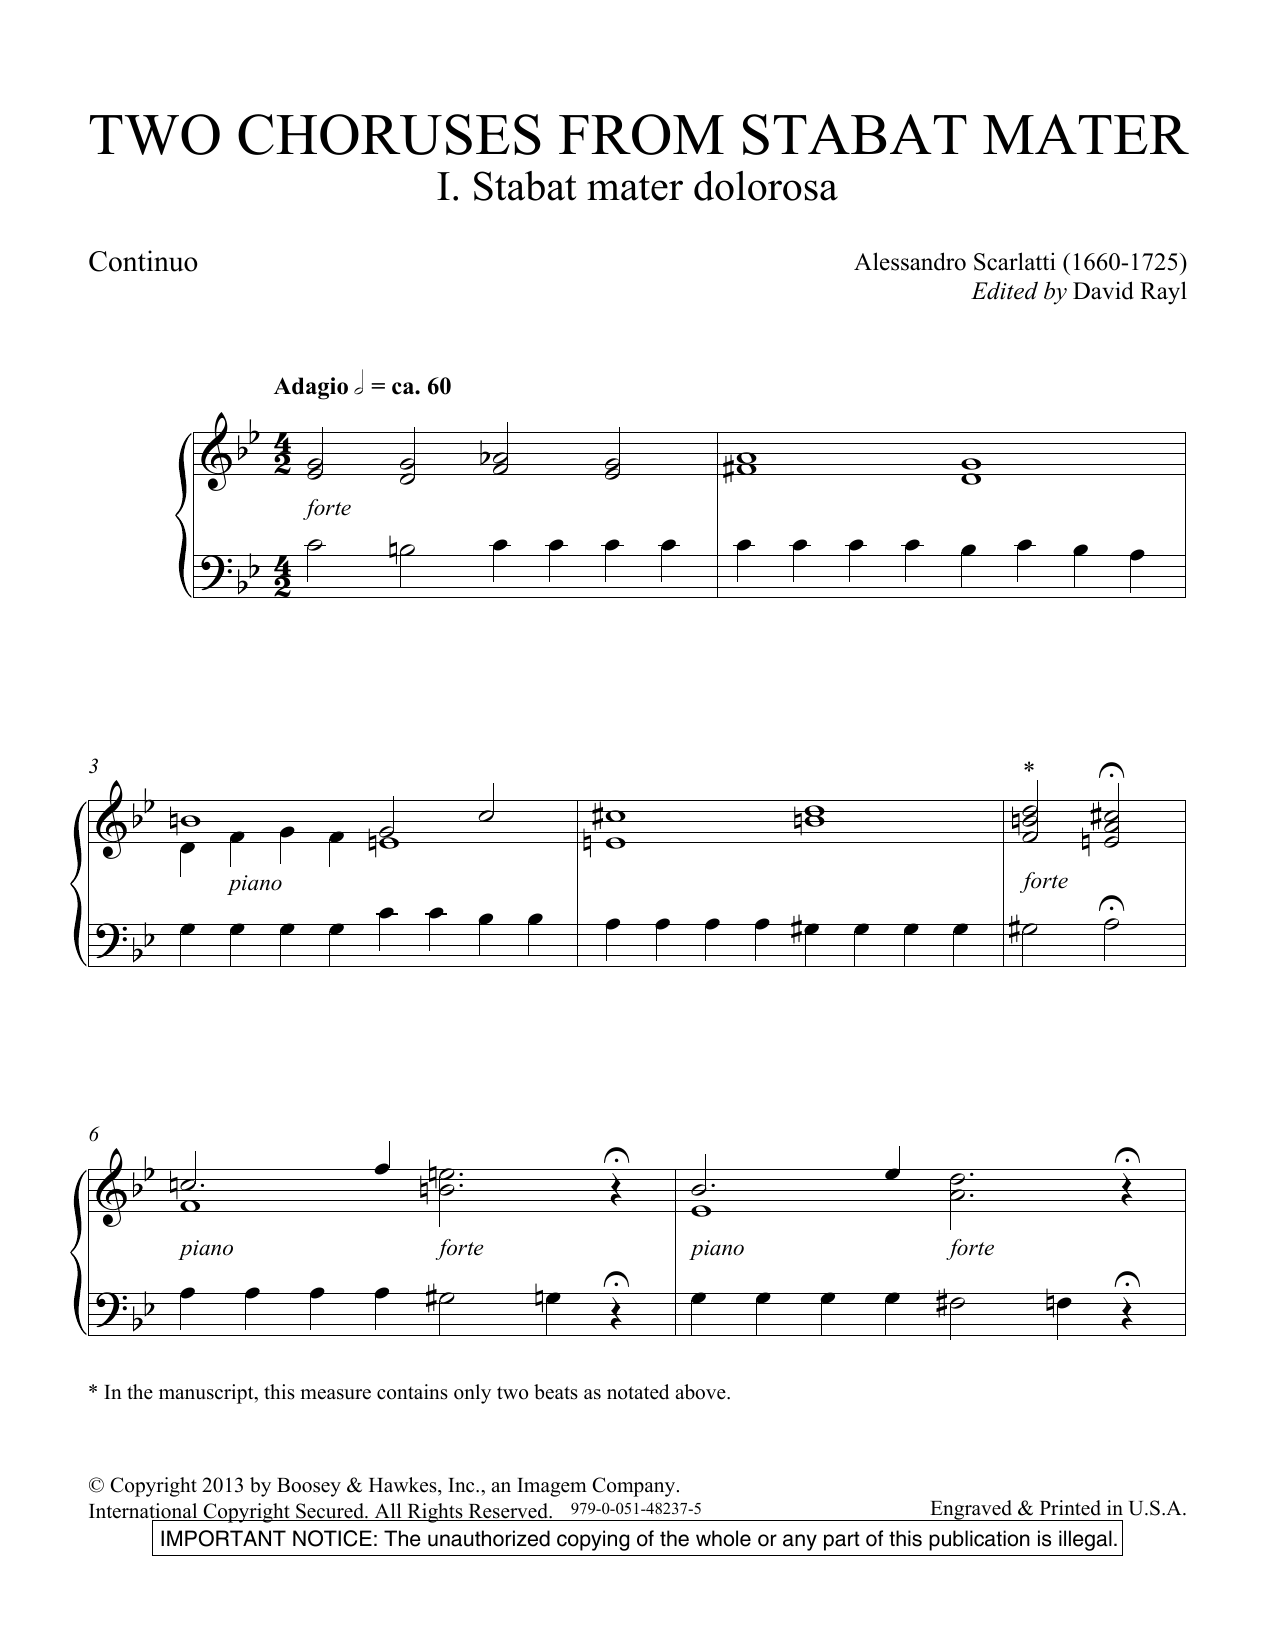 Two Choruses from Stabat Mater - Continuo Sheet Music